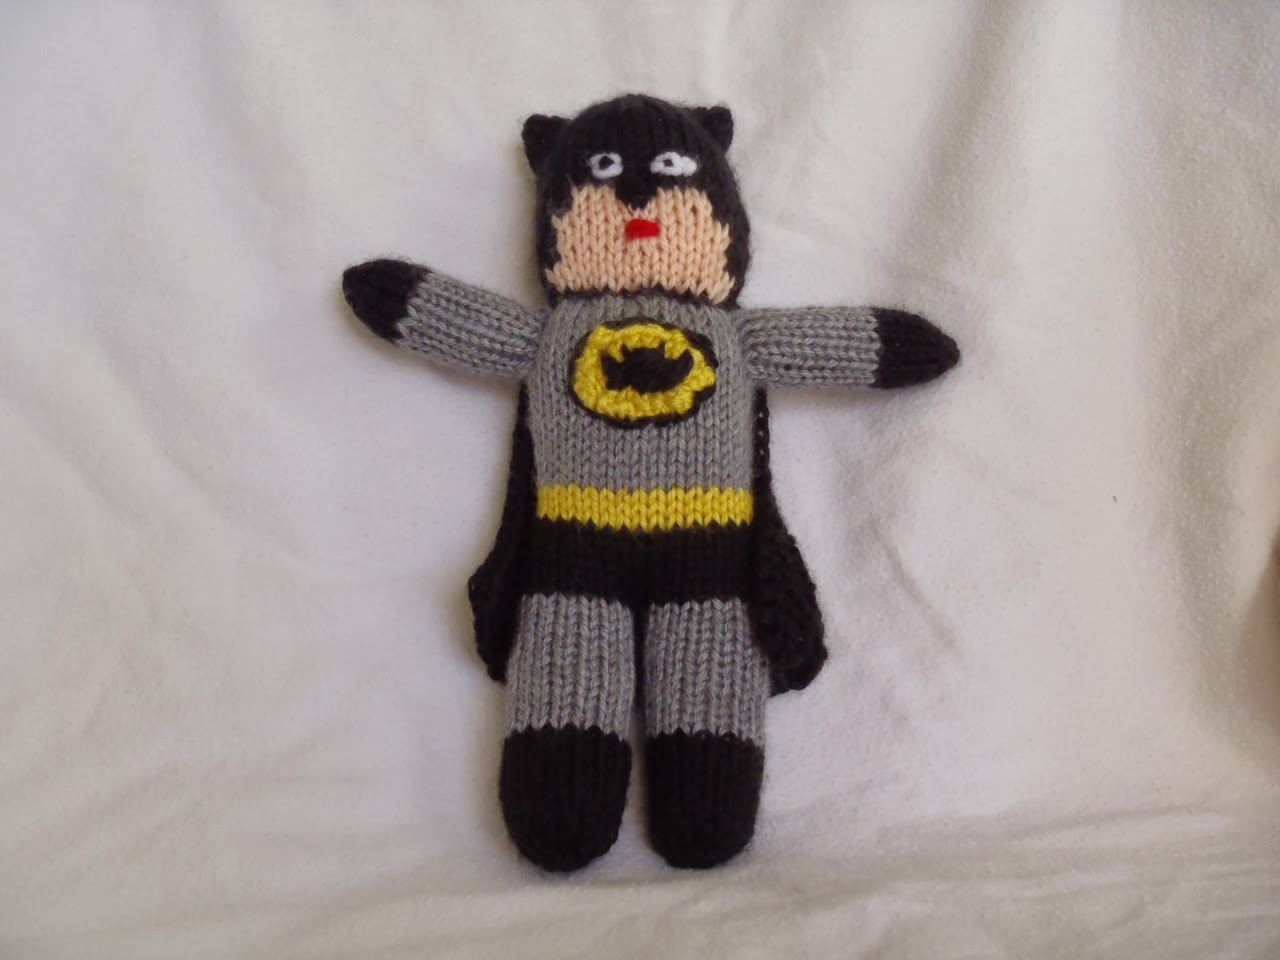 Easy Knit Boot Cuff Pattern Free : Stanas Critters Etc.: Knitting Pattern for Batman Toy